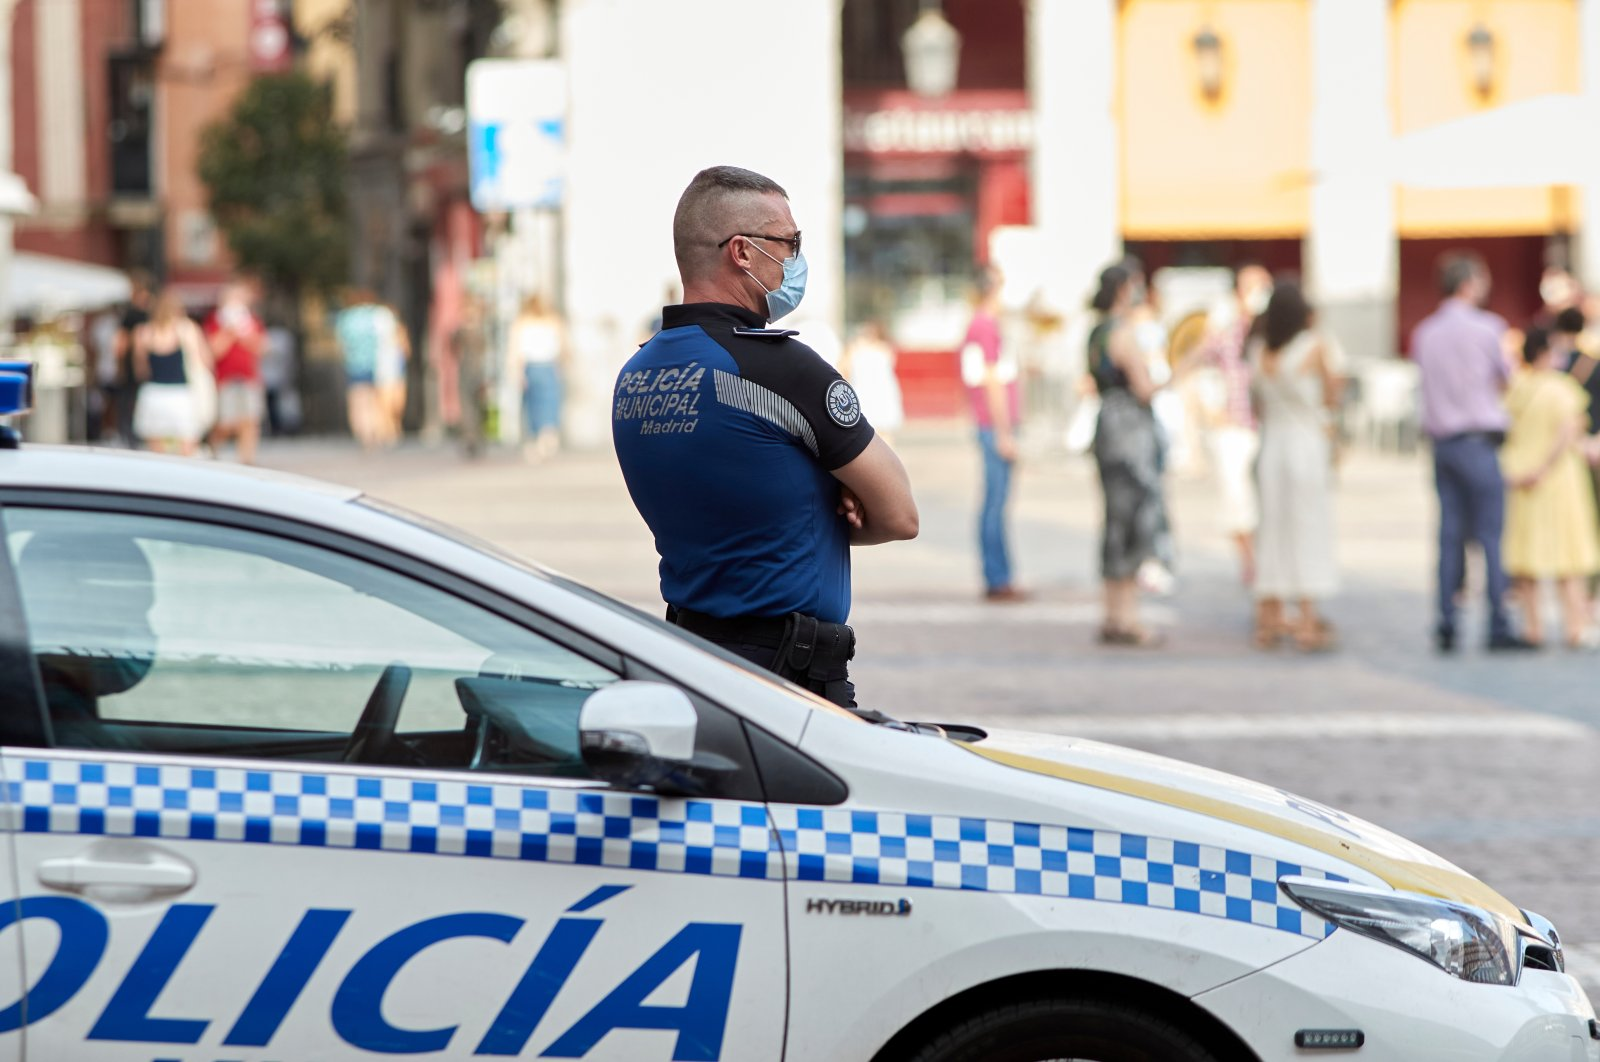 Municipal police patrols during the COVID-19 pandemic in Madrid, Spain, August 8, 2020. (Shutterstock Photo)